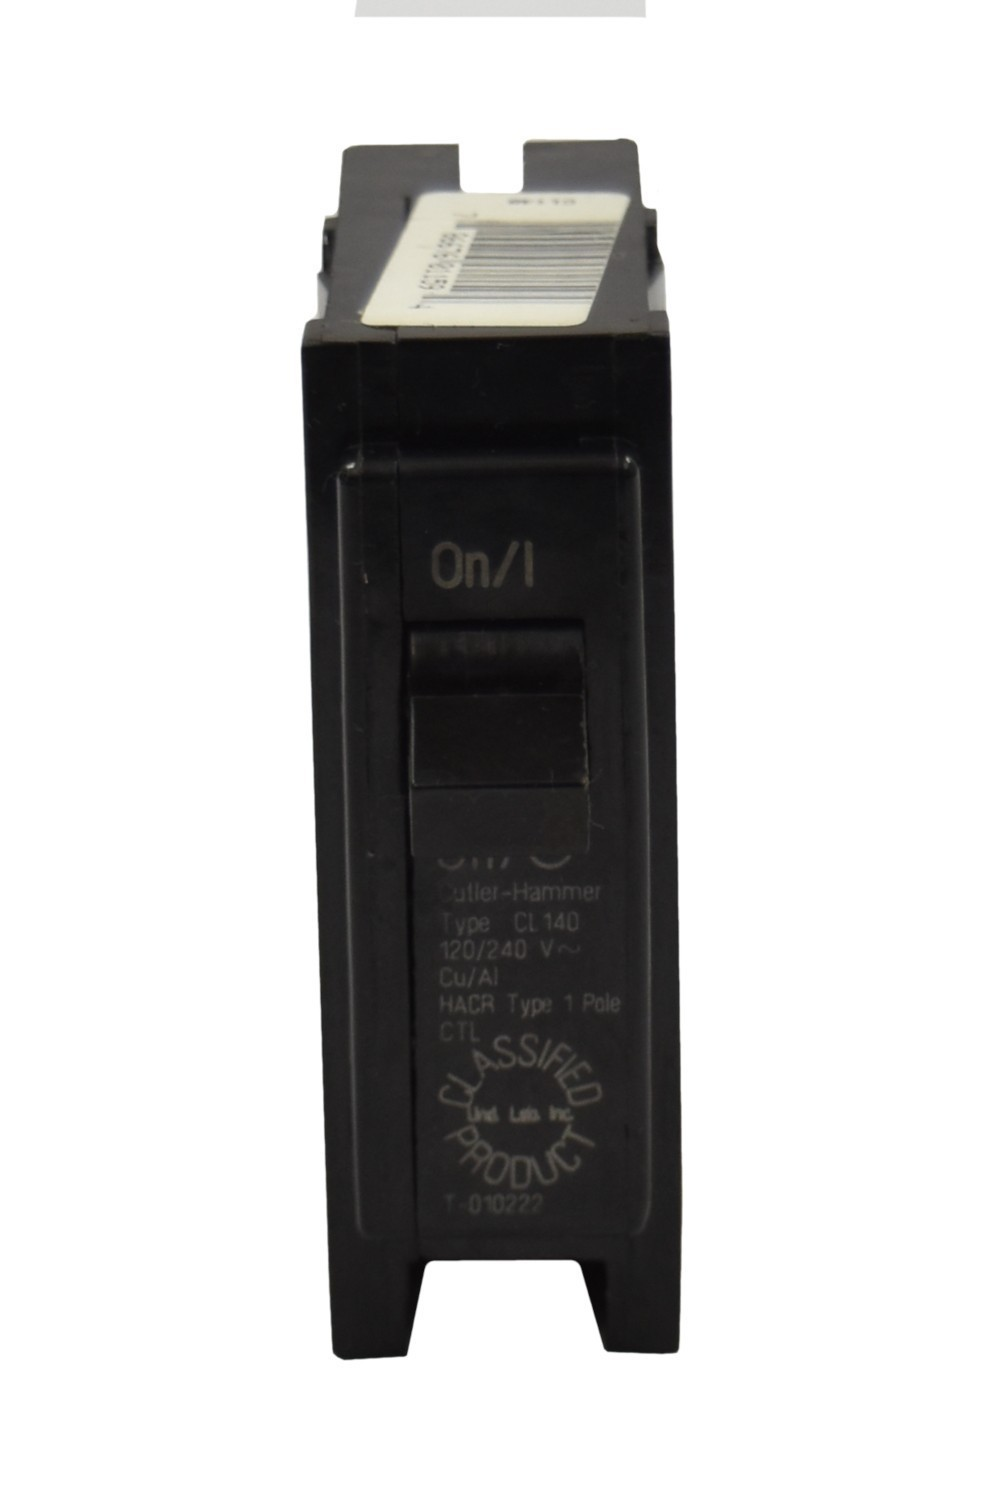 CUTLER HAMMER//WESTINGHOUSE CL120 U 20A 120//240V 1P0 10K Used UL Classified Replacement Breaker HOM120,MP120,THQ1120,Q120,MP120,TB120